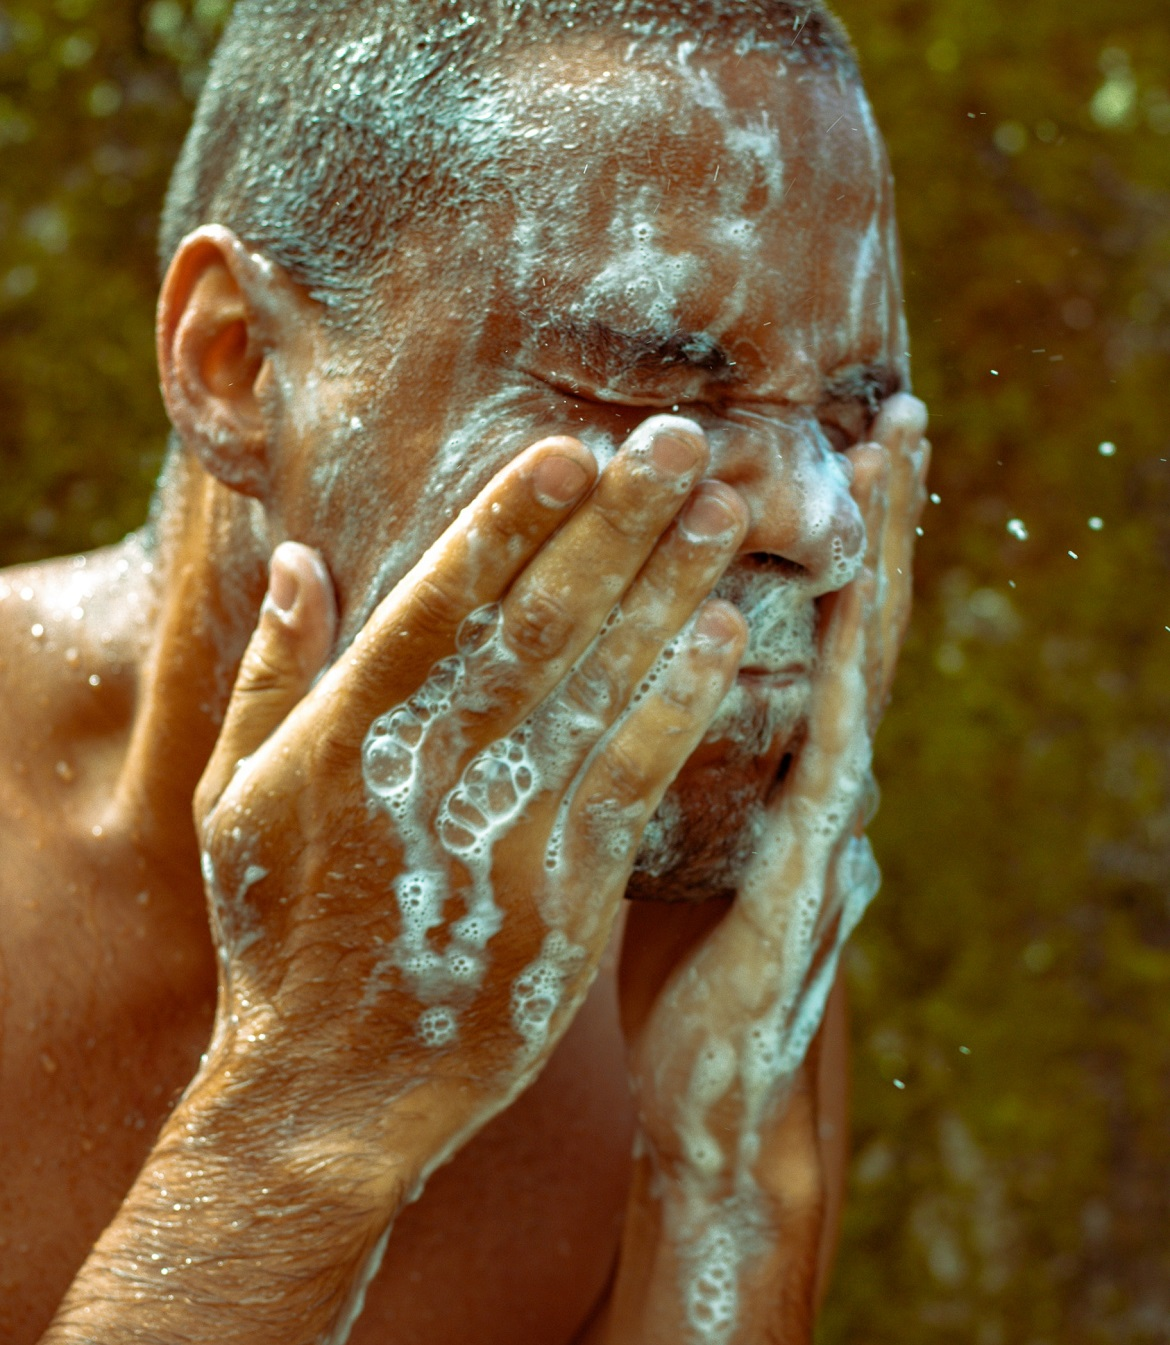 A man using hemp body wash on his face and hands